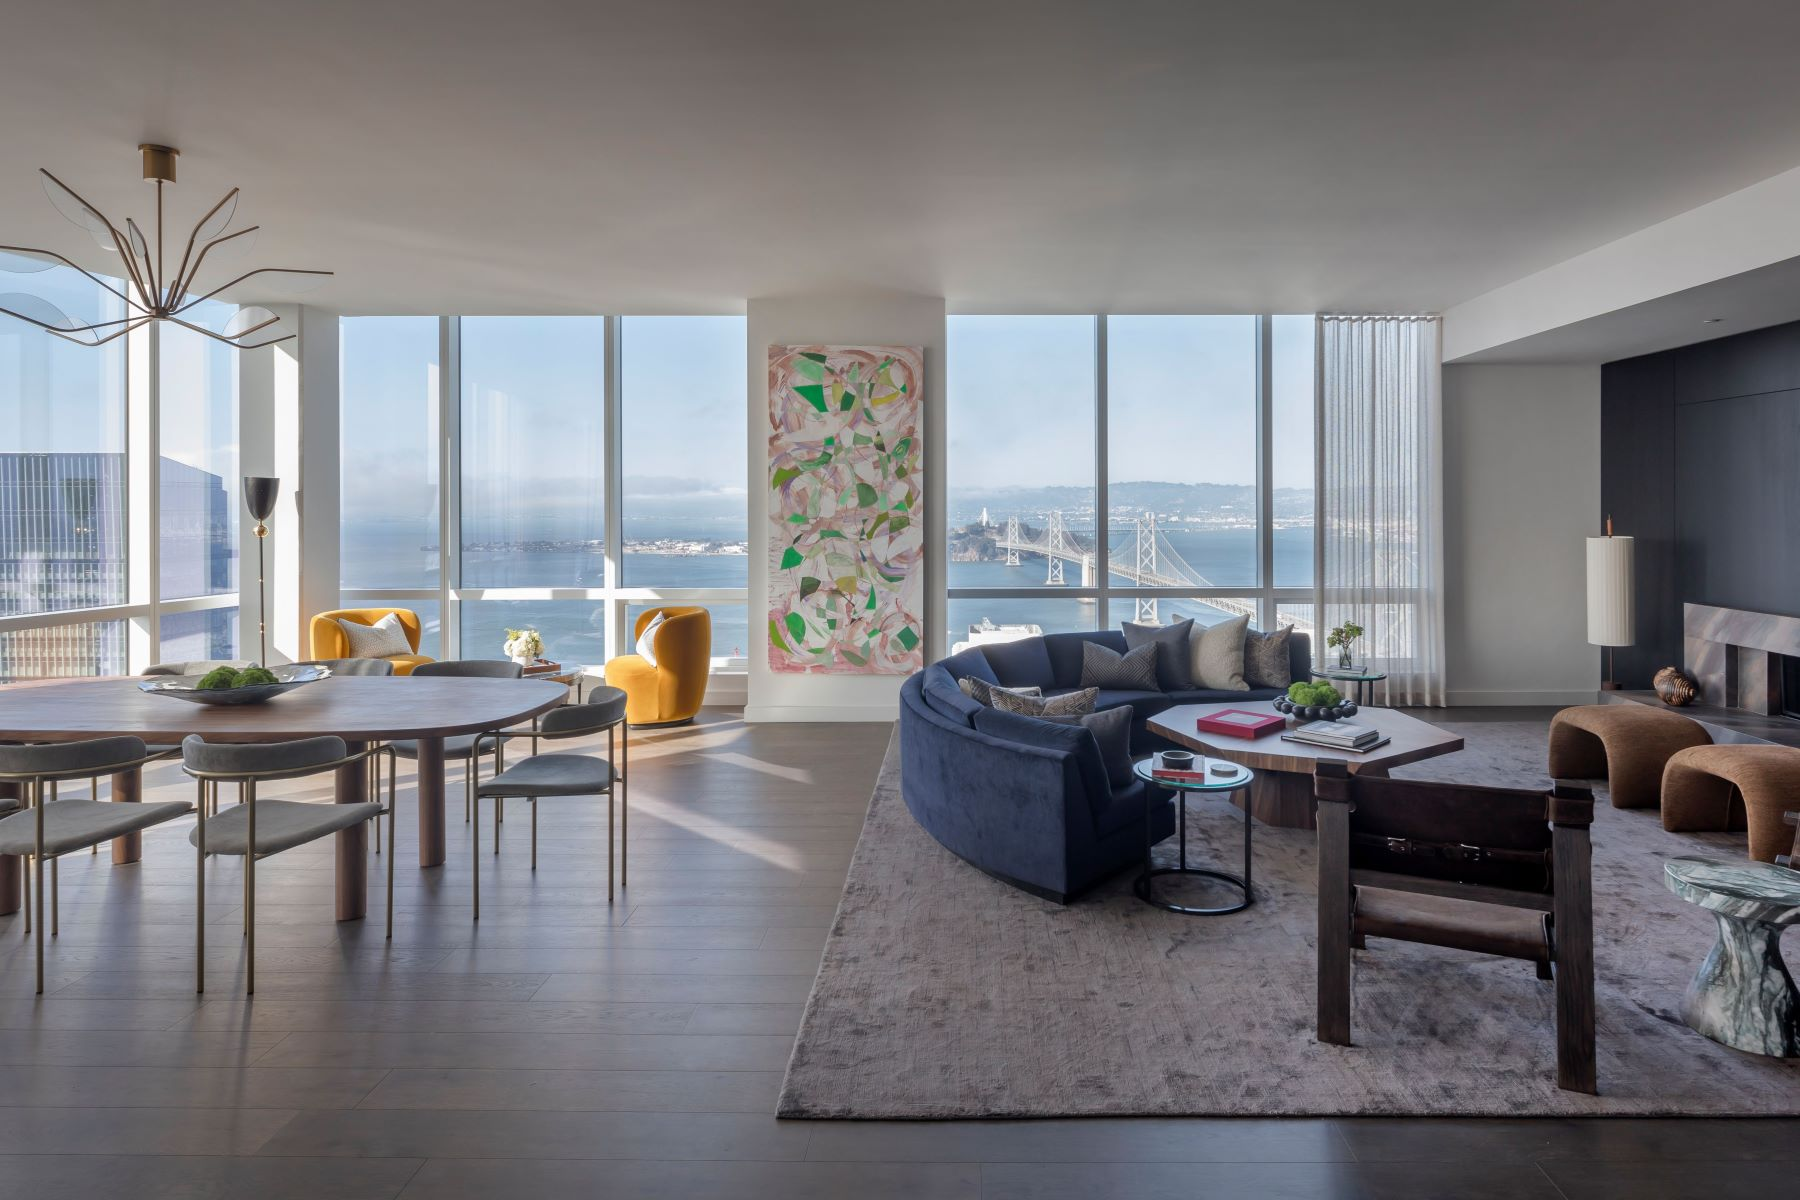 Condominiums for Sale at The Avery Penthouse 488 Folsom St, Penthouse 5602 San Francisco, California 94105 United States